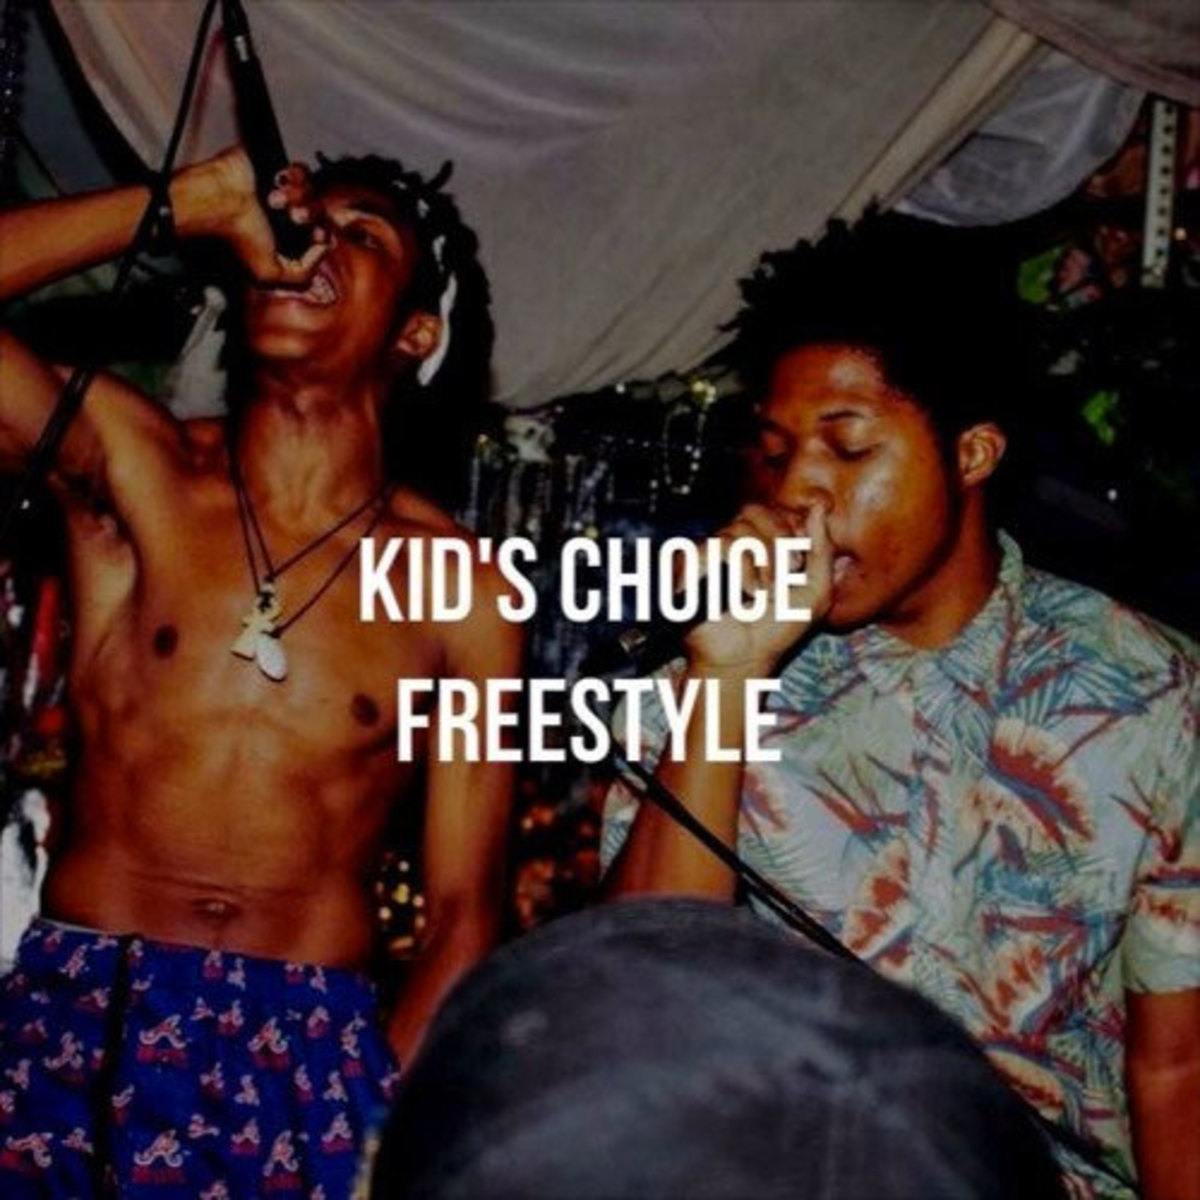 jazz-and-kenny-mason-kids-choice-freestyle.jpg